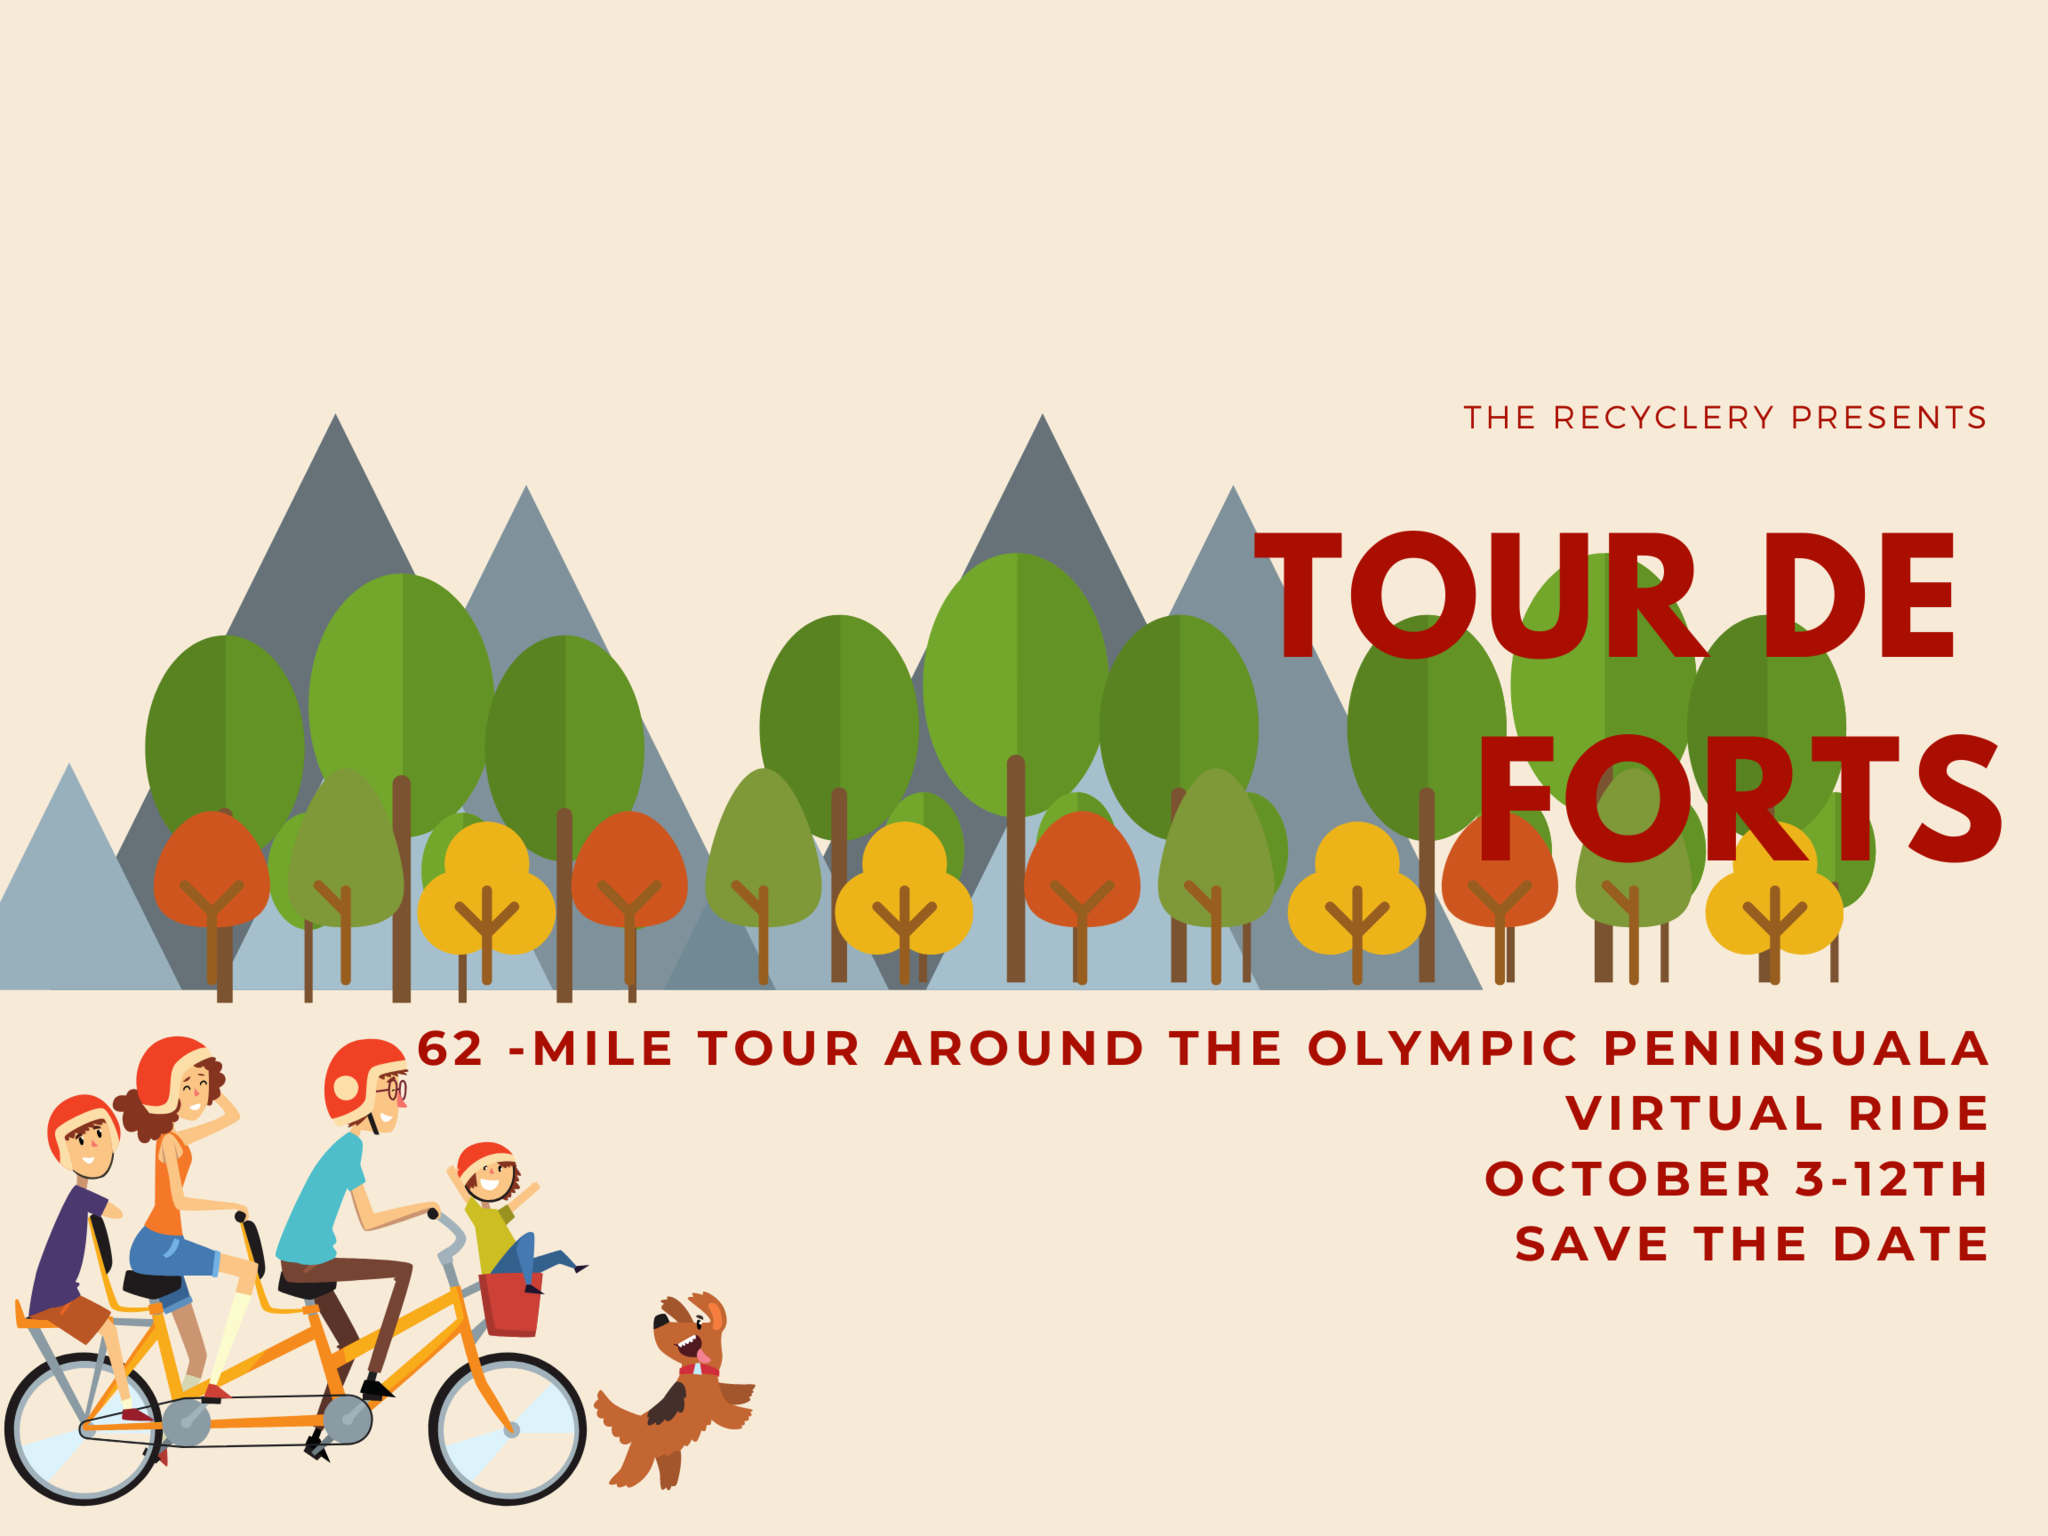 Tour de Forts Save the Date